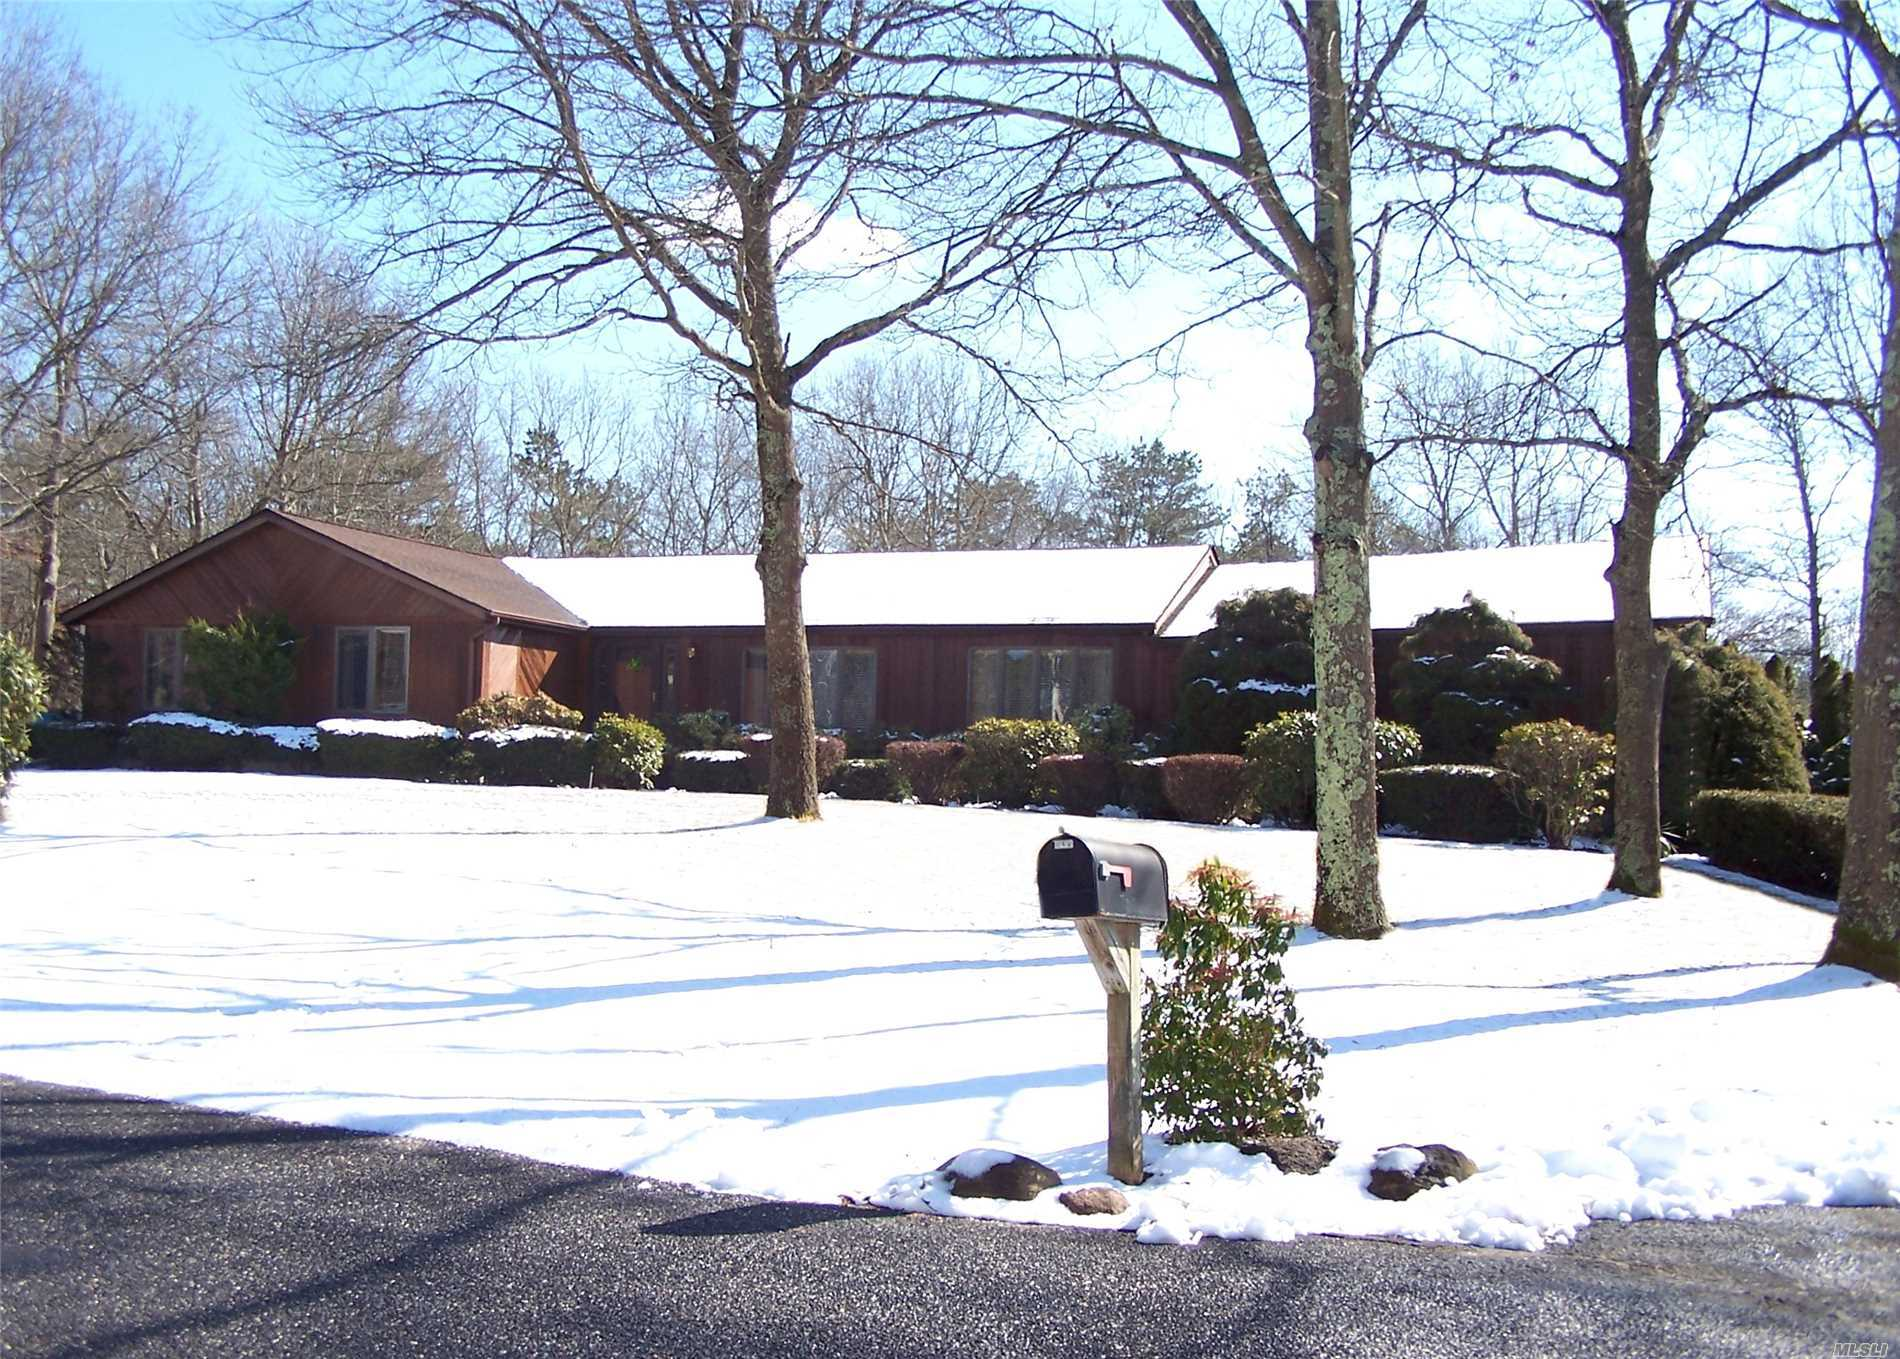 Meticulously Maintained Sprawling Ranch On Private/Dead End Rd On 1.26 Acres W/ Sparkling Hardwood Floors Throughout, Eik W/Center Island&Stainless Appliances Opens To Family Rm W/ Wood Burning Stove&Sliders To Huge Rear Paver Patio/Ig Pool/Fully Fenced Rear Yard, Spacious Master Suite W/ Dressing Rm&Full Bath, Formal Living Rm&Dining Rm W/ French Doors/Bay Windows, Huge Bsmt W/Heat/Ose, Cac, Igs, Shed, Attic Storage, Oversized Garage&Doors. Seconds To Sunrise Hwy. Center Moriches Schools.Hurry!